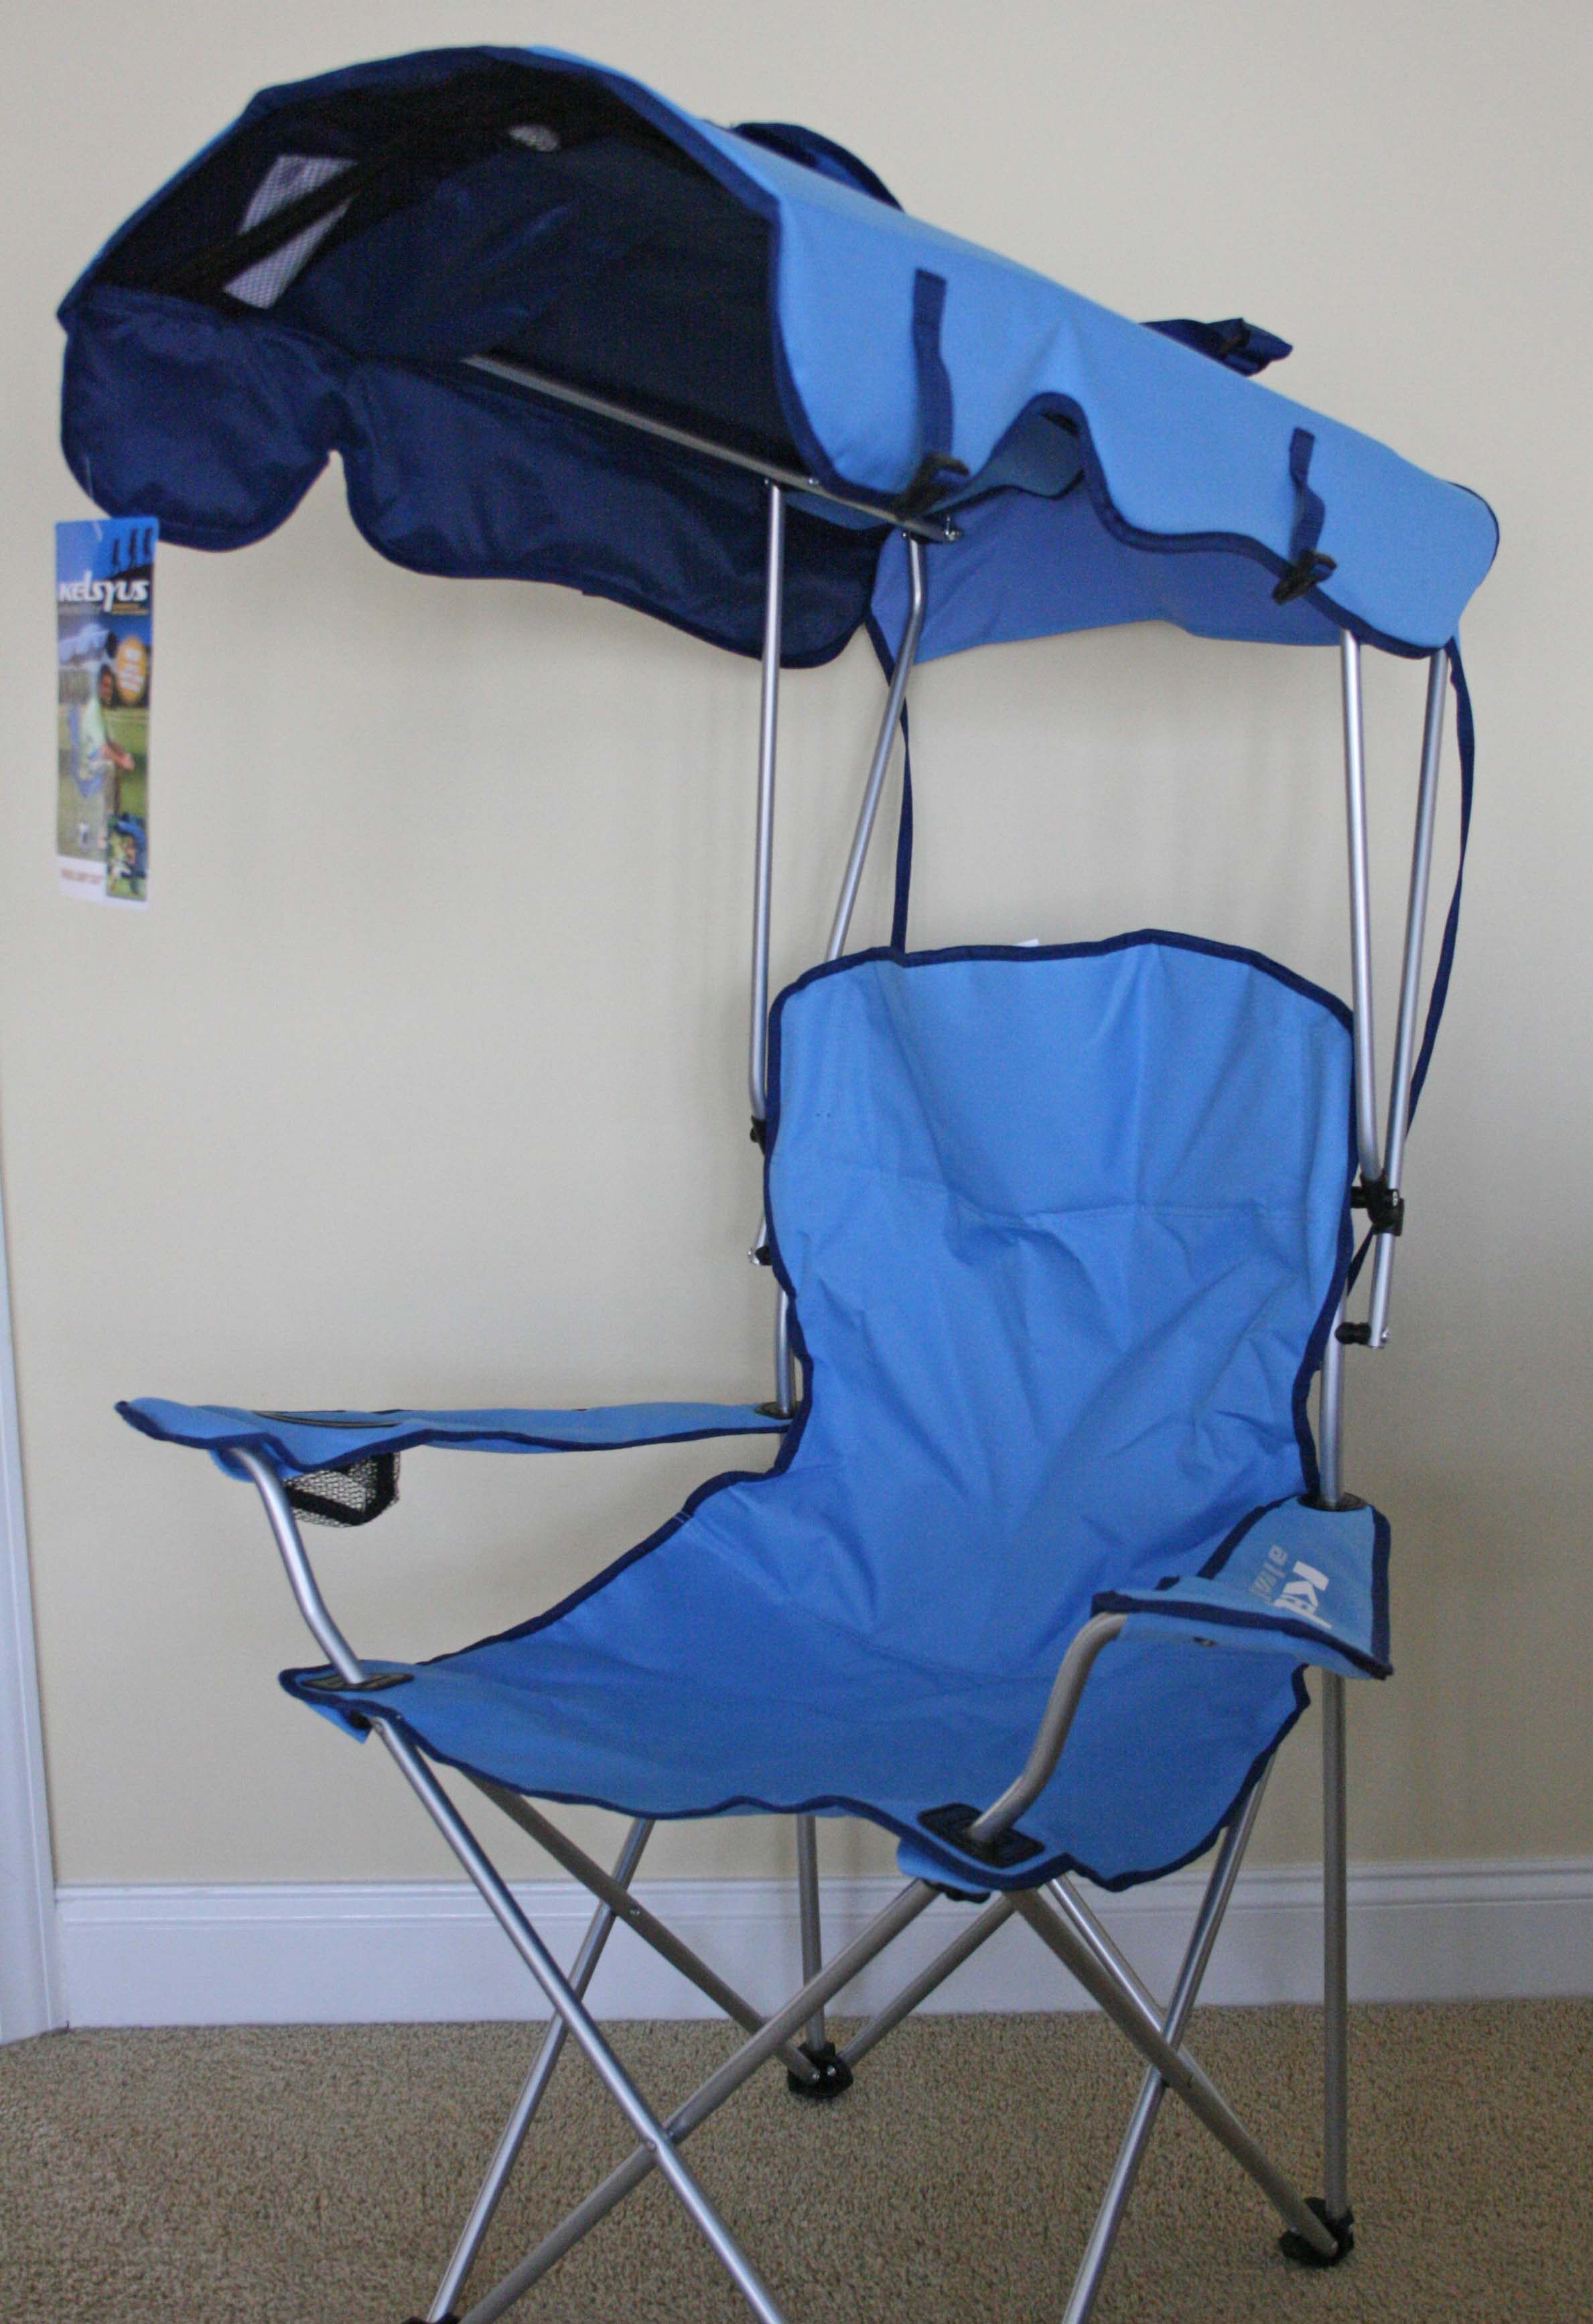 Backpack Beach Chair Costco Collapsible Back Pack Sports Chair At Costco Order By